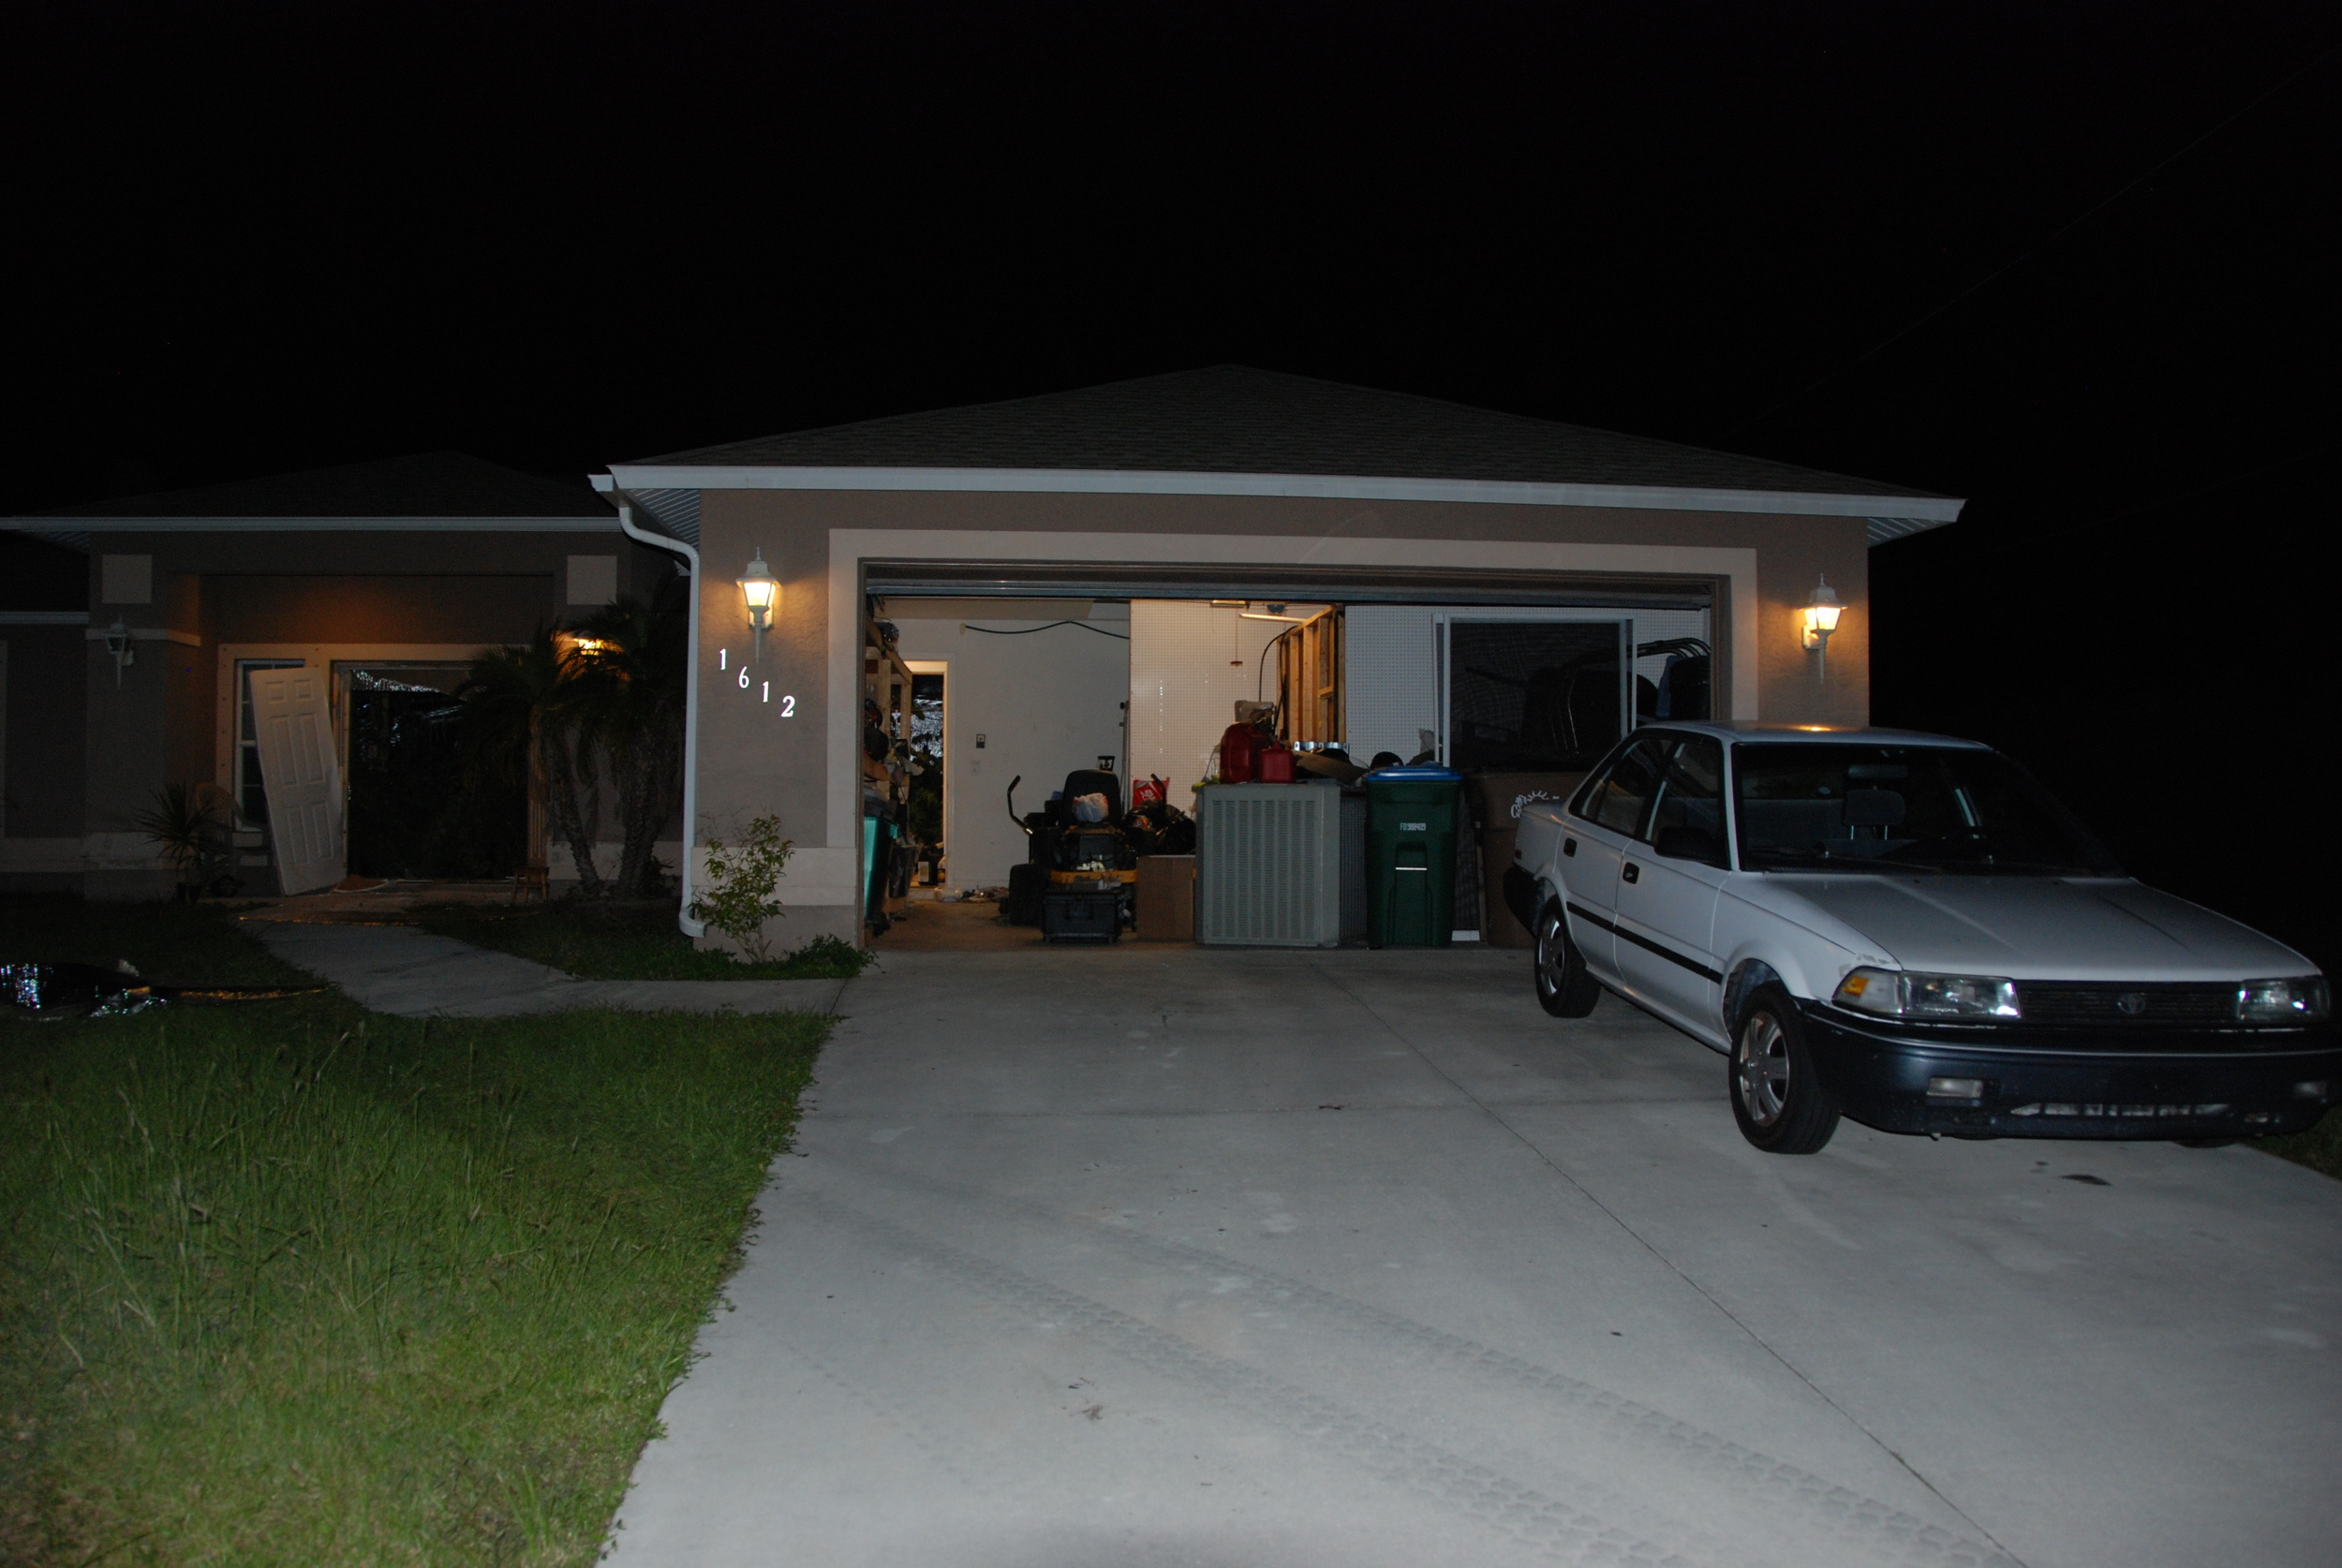 PHOTO: Cape Coral Police Department busted 2 additional marijuana grow houses linked to Jair Baluja-Martinez. (Photo Courtesy of Cape Coral Police Department)